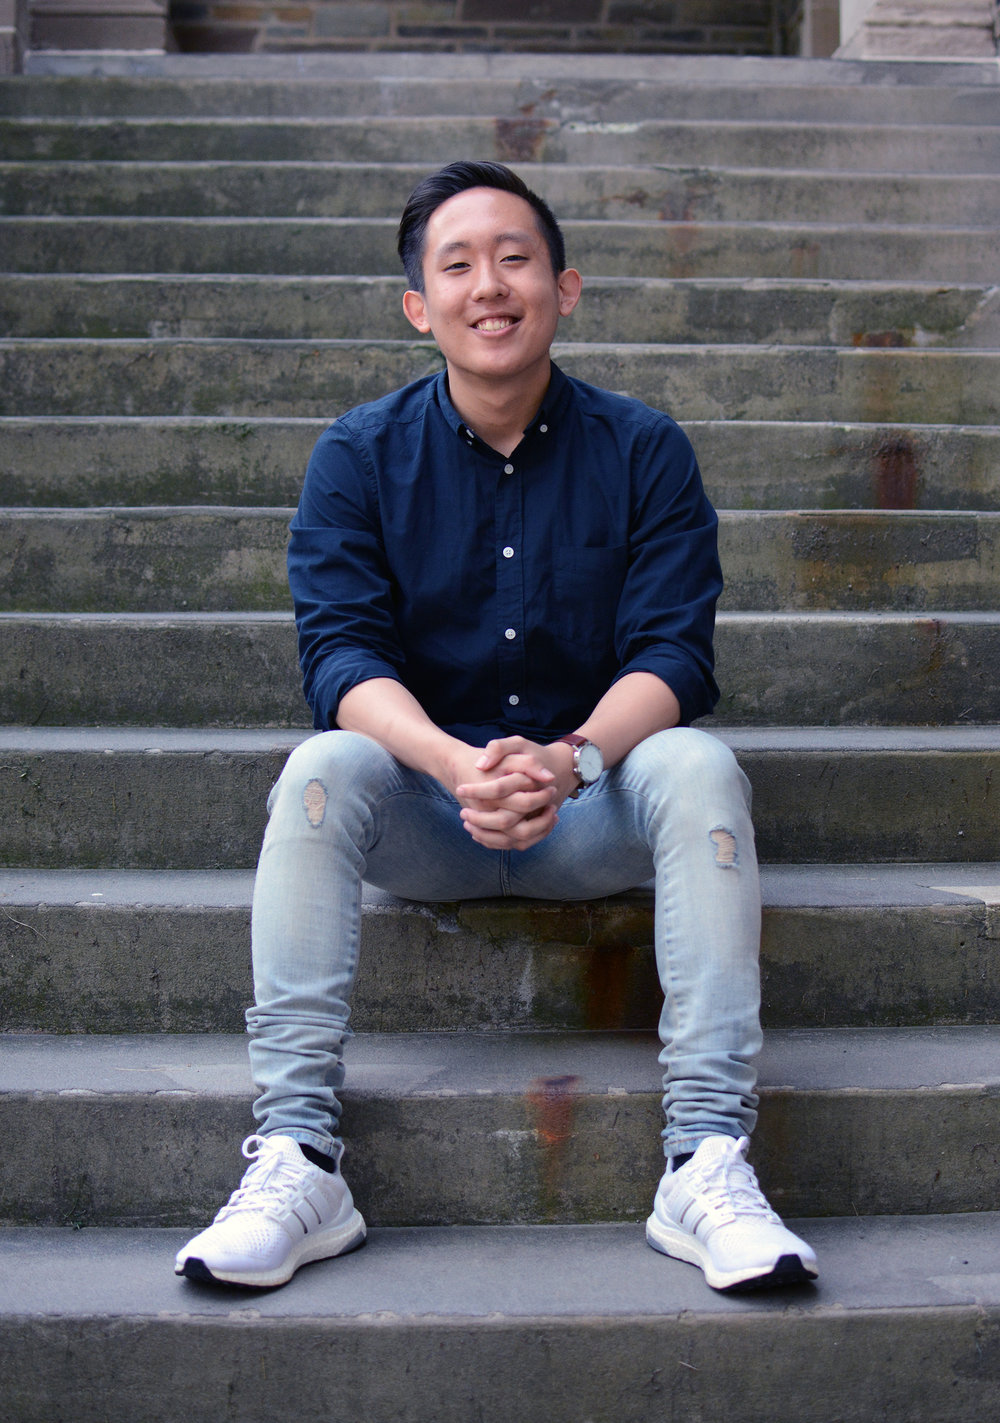 Jong Han   Facilitator    Year : Senior, 2019  Major : Economics  Other Involvements : Multicultural Greek Fraternal Council, Pi Delta Psi  As Facilitator, Jong hopes to provide support to all orgs under the umbrella and increase the A3 voice on campus. He seeks to expand CAPSU's overall presence with other external umbrella organizations as well as Cornell's undergraduate community. Jong is a hardcore NBA fan and really believes he'll finally take 1st place in his fantasy league.